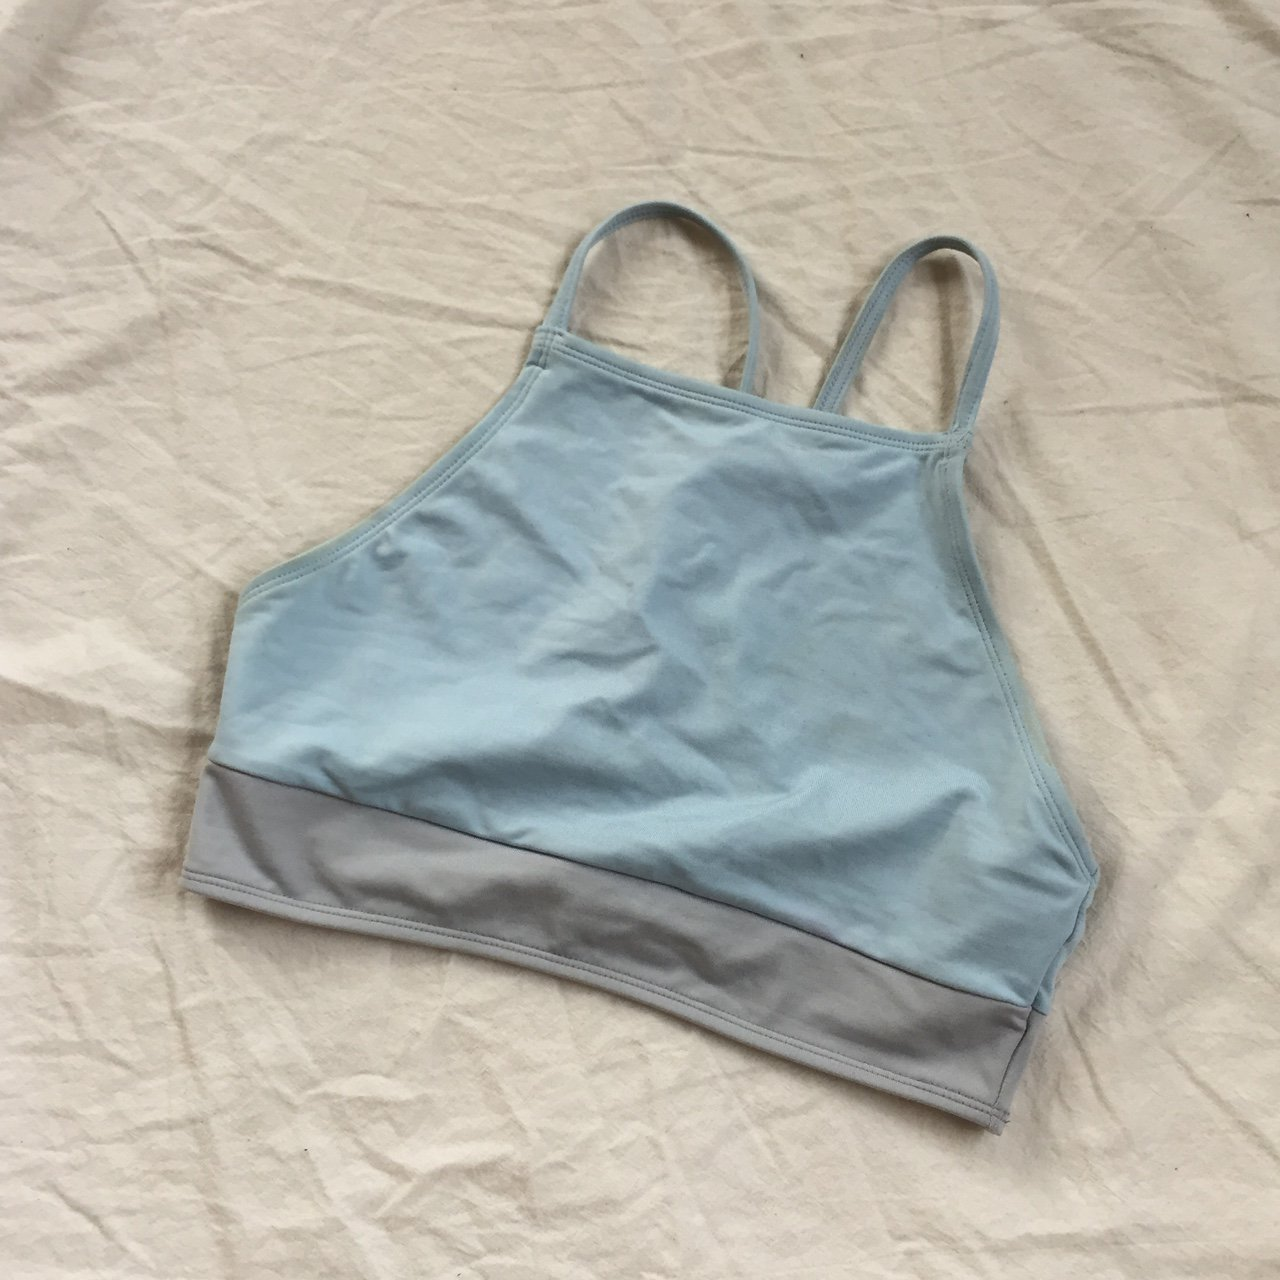 9dad4f2585ccb ⚗ VINTAGE BABY BLUE AND GRAY COLORBLOCKED EVERLAST HALTER S - Depop